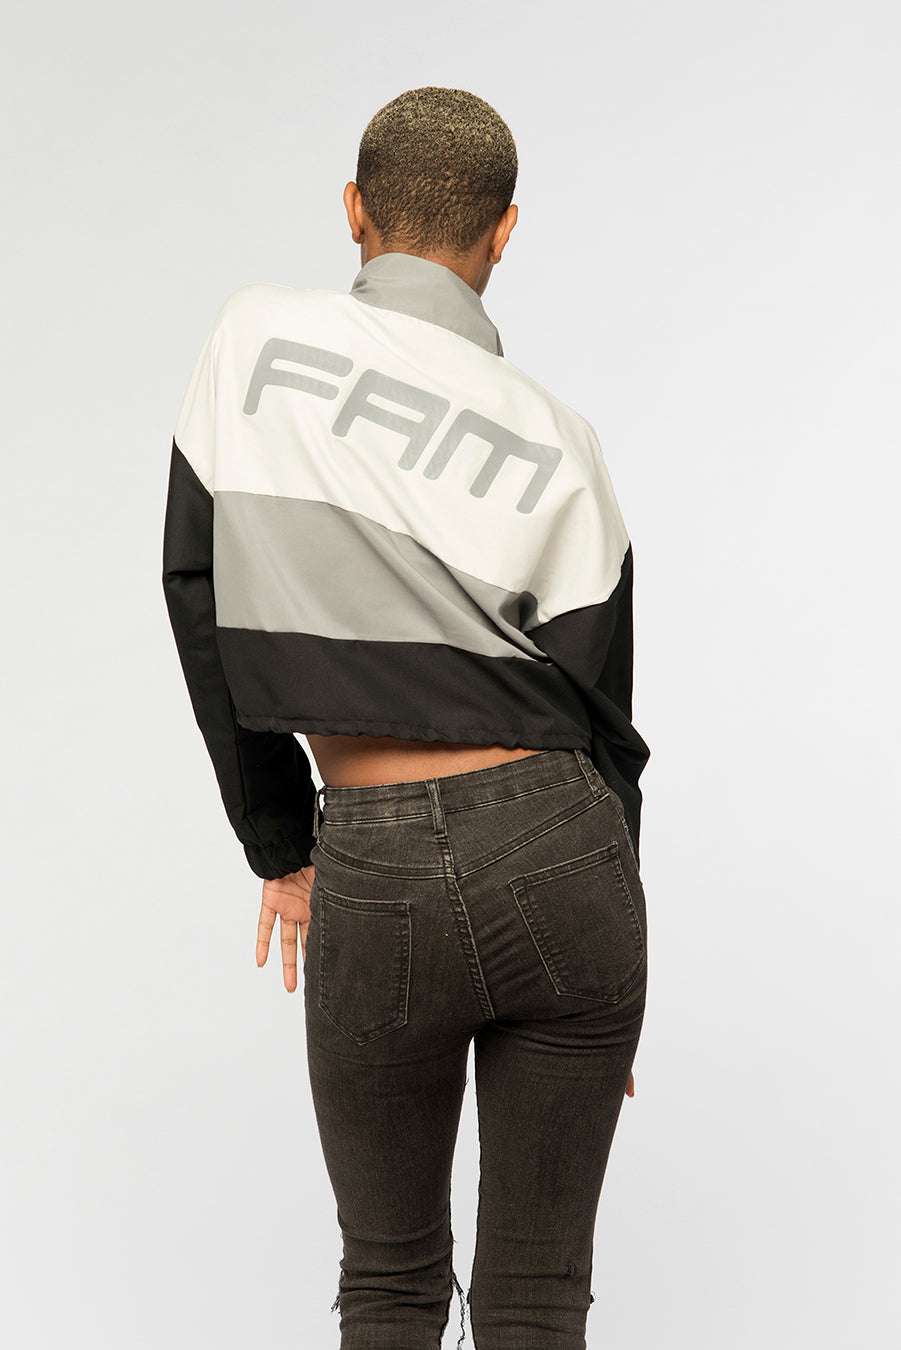 new_future_london_fam_cropped_windbreaker-1.jpg